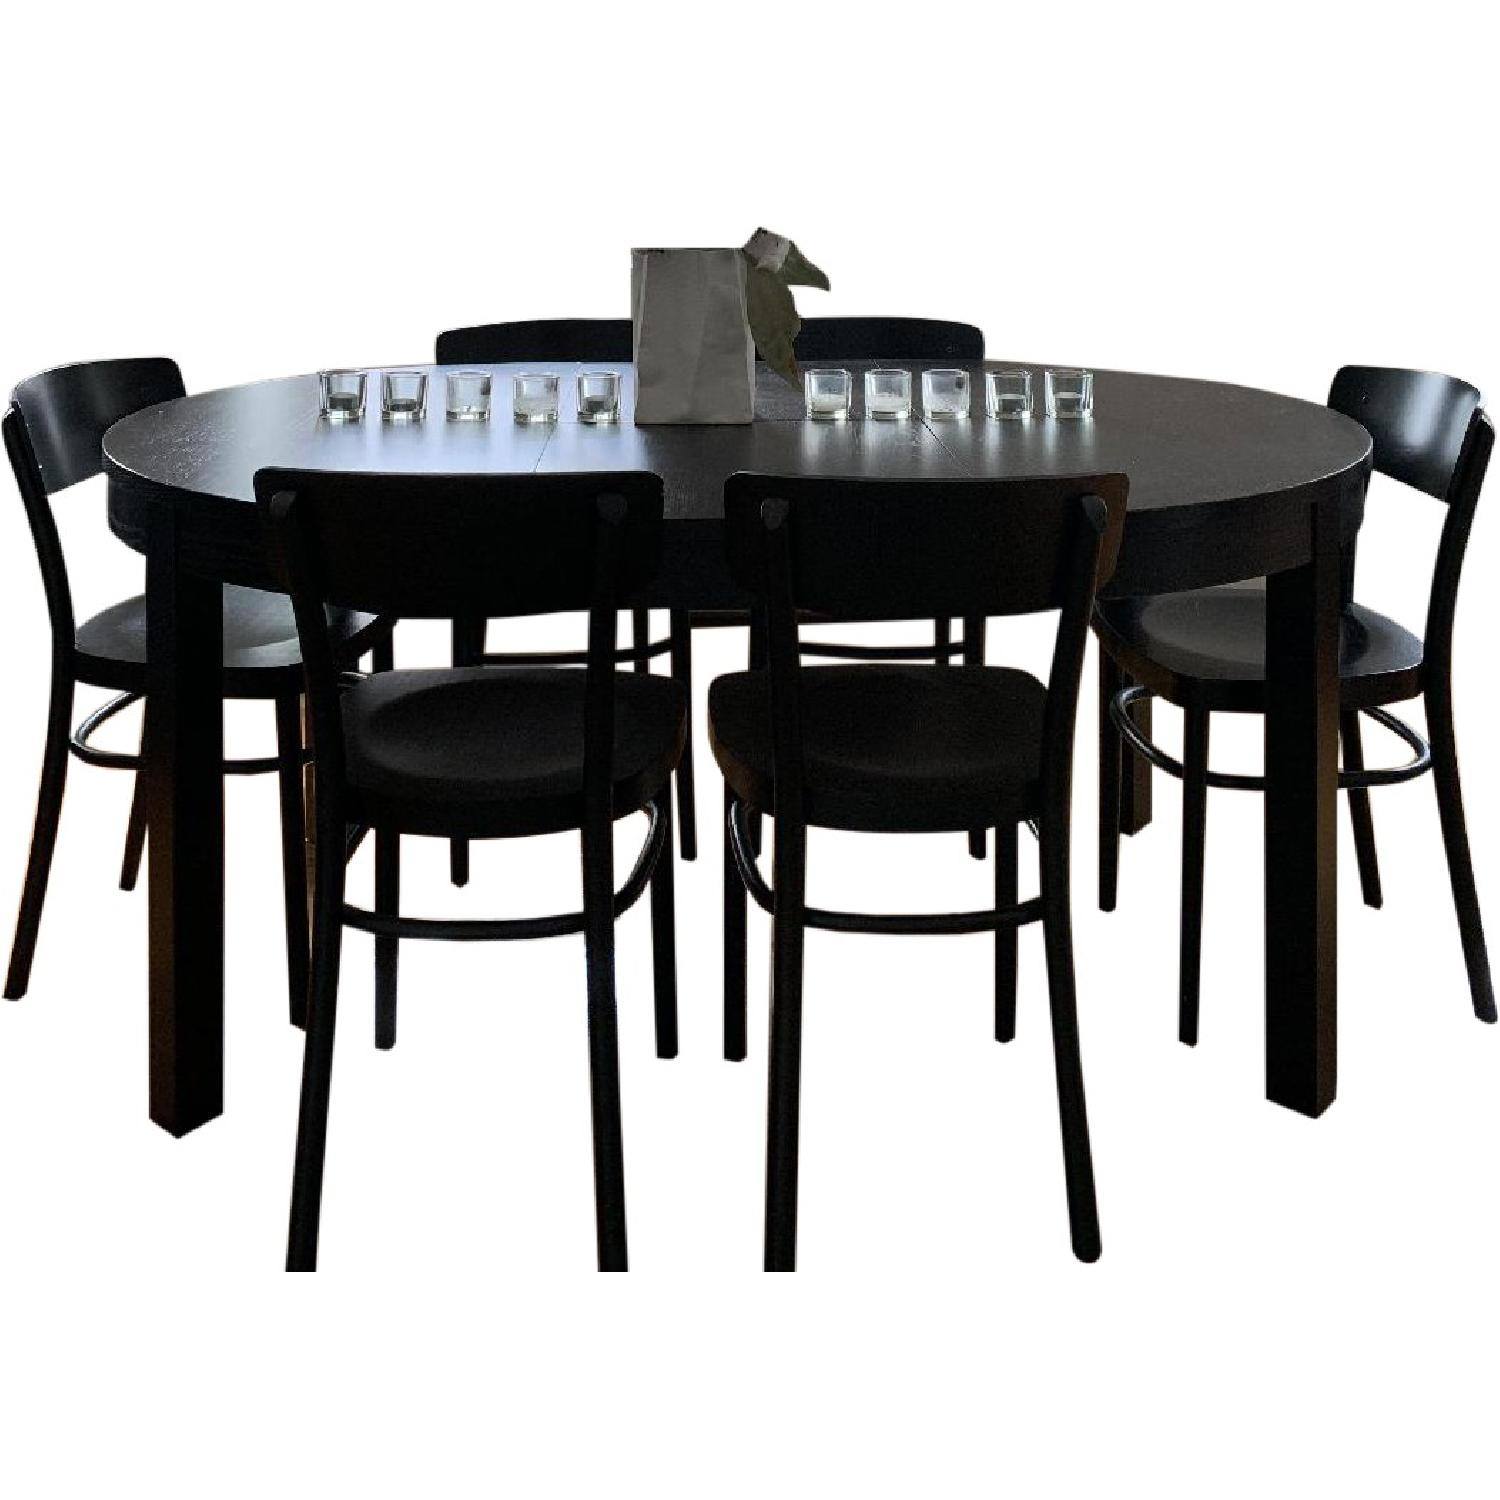 Ikea Bjursta & Idolf 7-Piece Dining Set - image-4